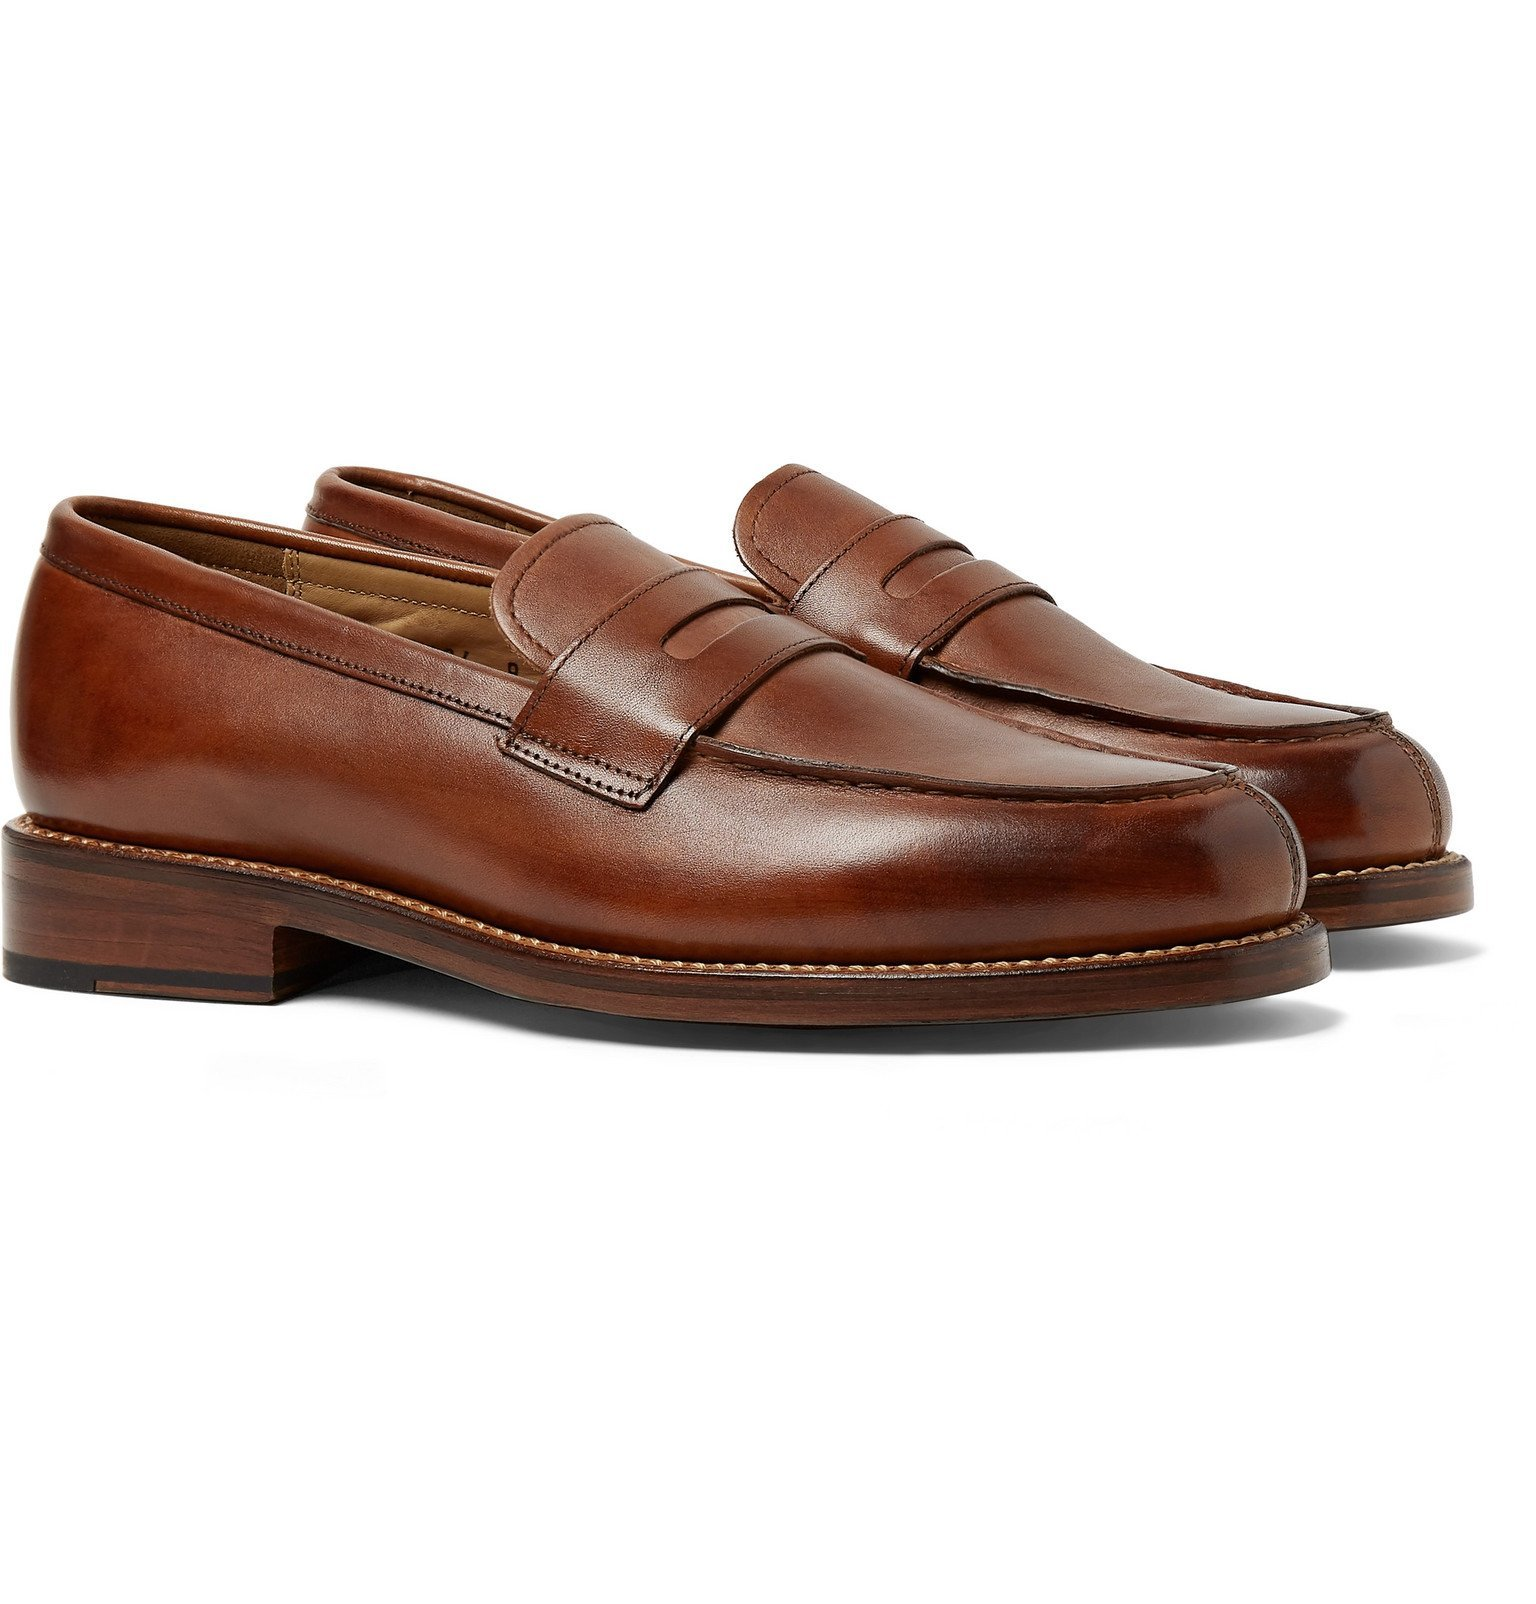 Photo: Grenson - Peter Hand-Painted Leather Penny Loafers - Brown